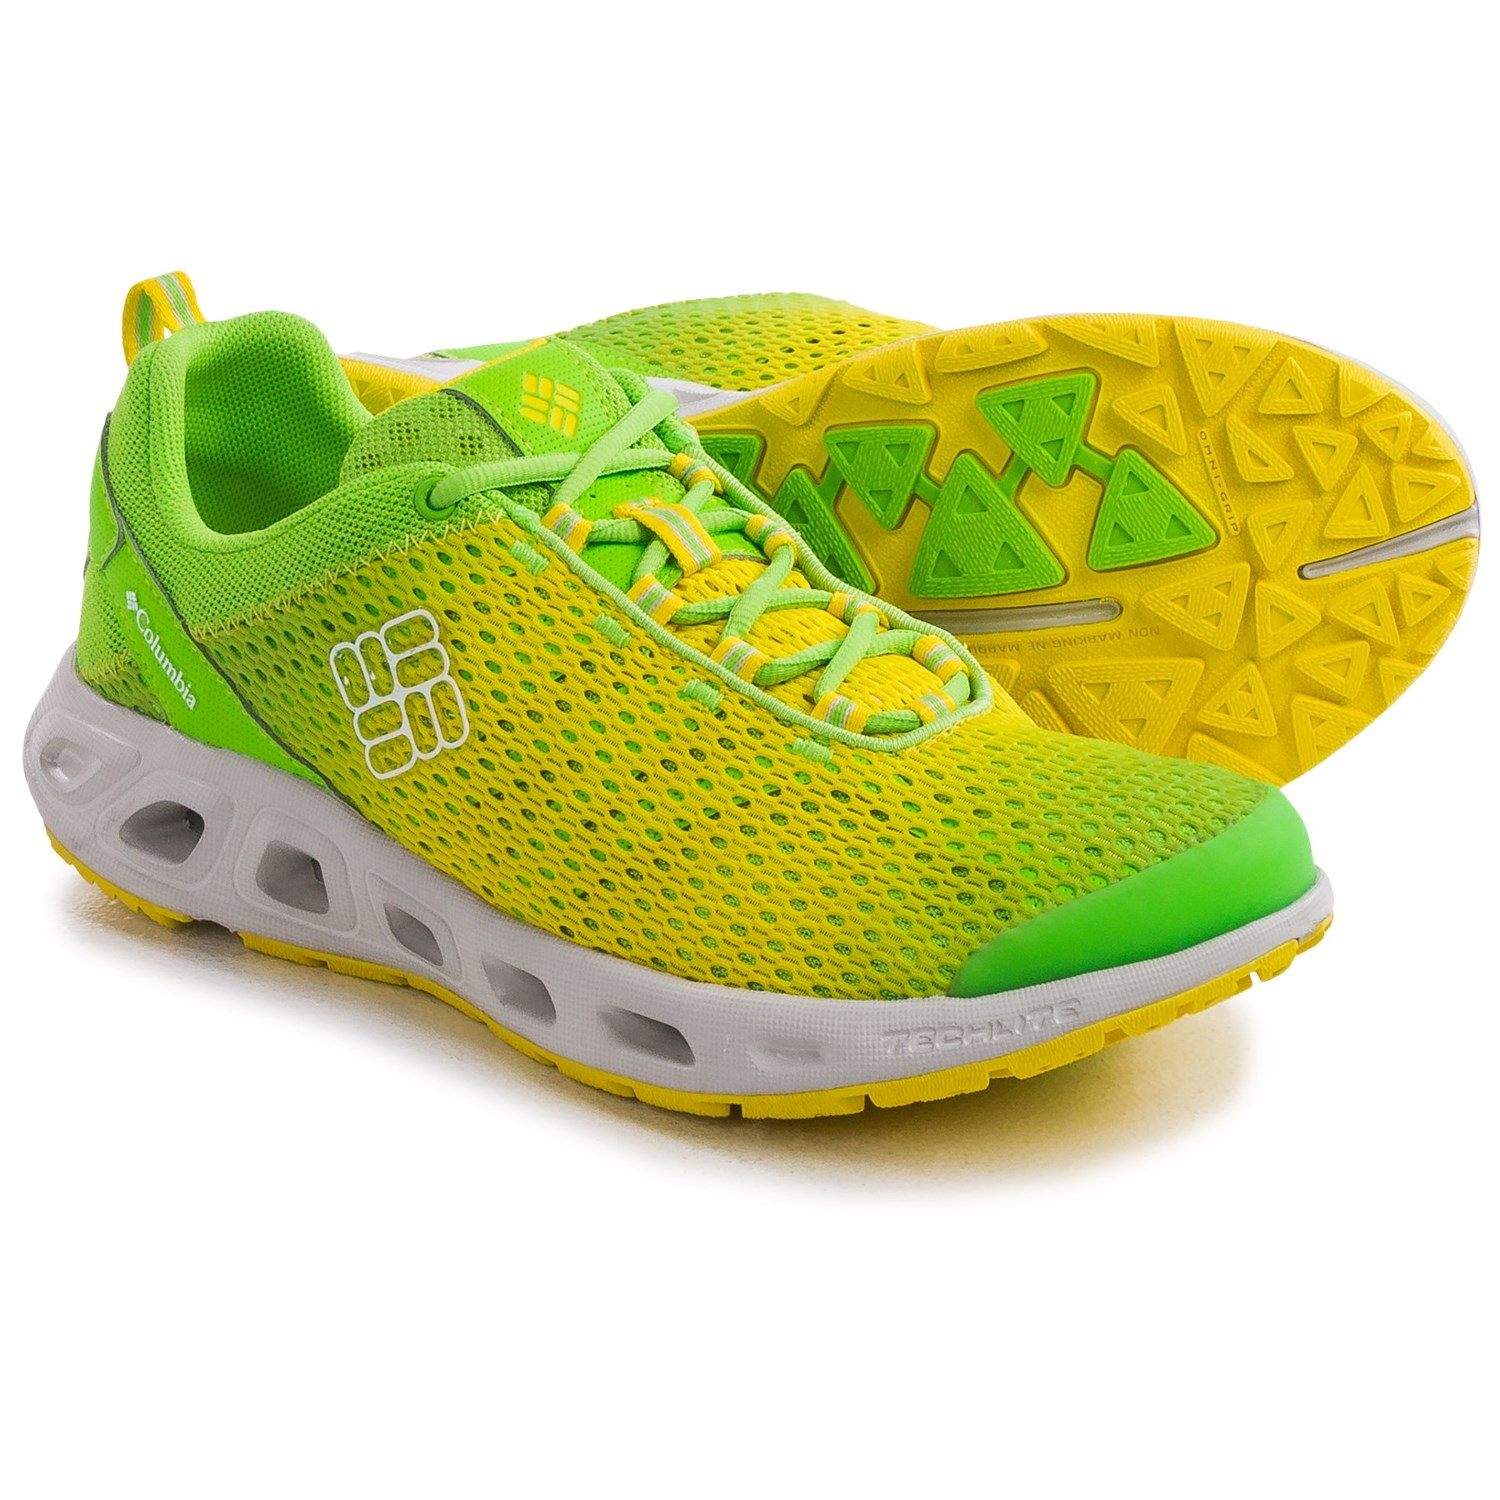 e62bfd1ee3cc Columbia Sportswear Drainmaker III Water Shoes (For Men) 9841H on ...